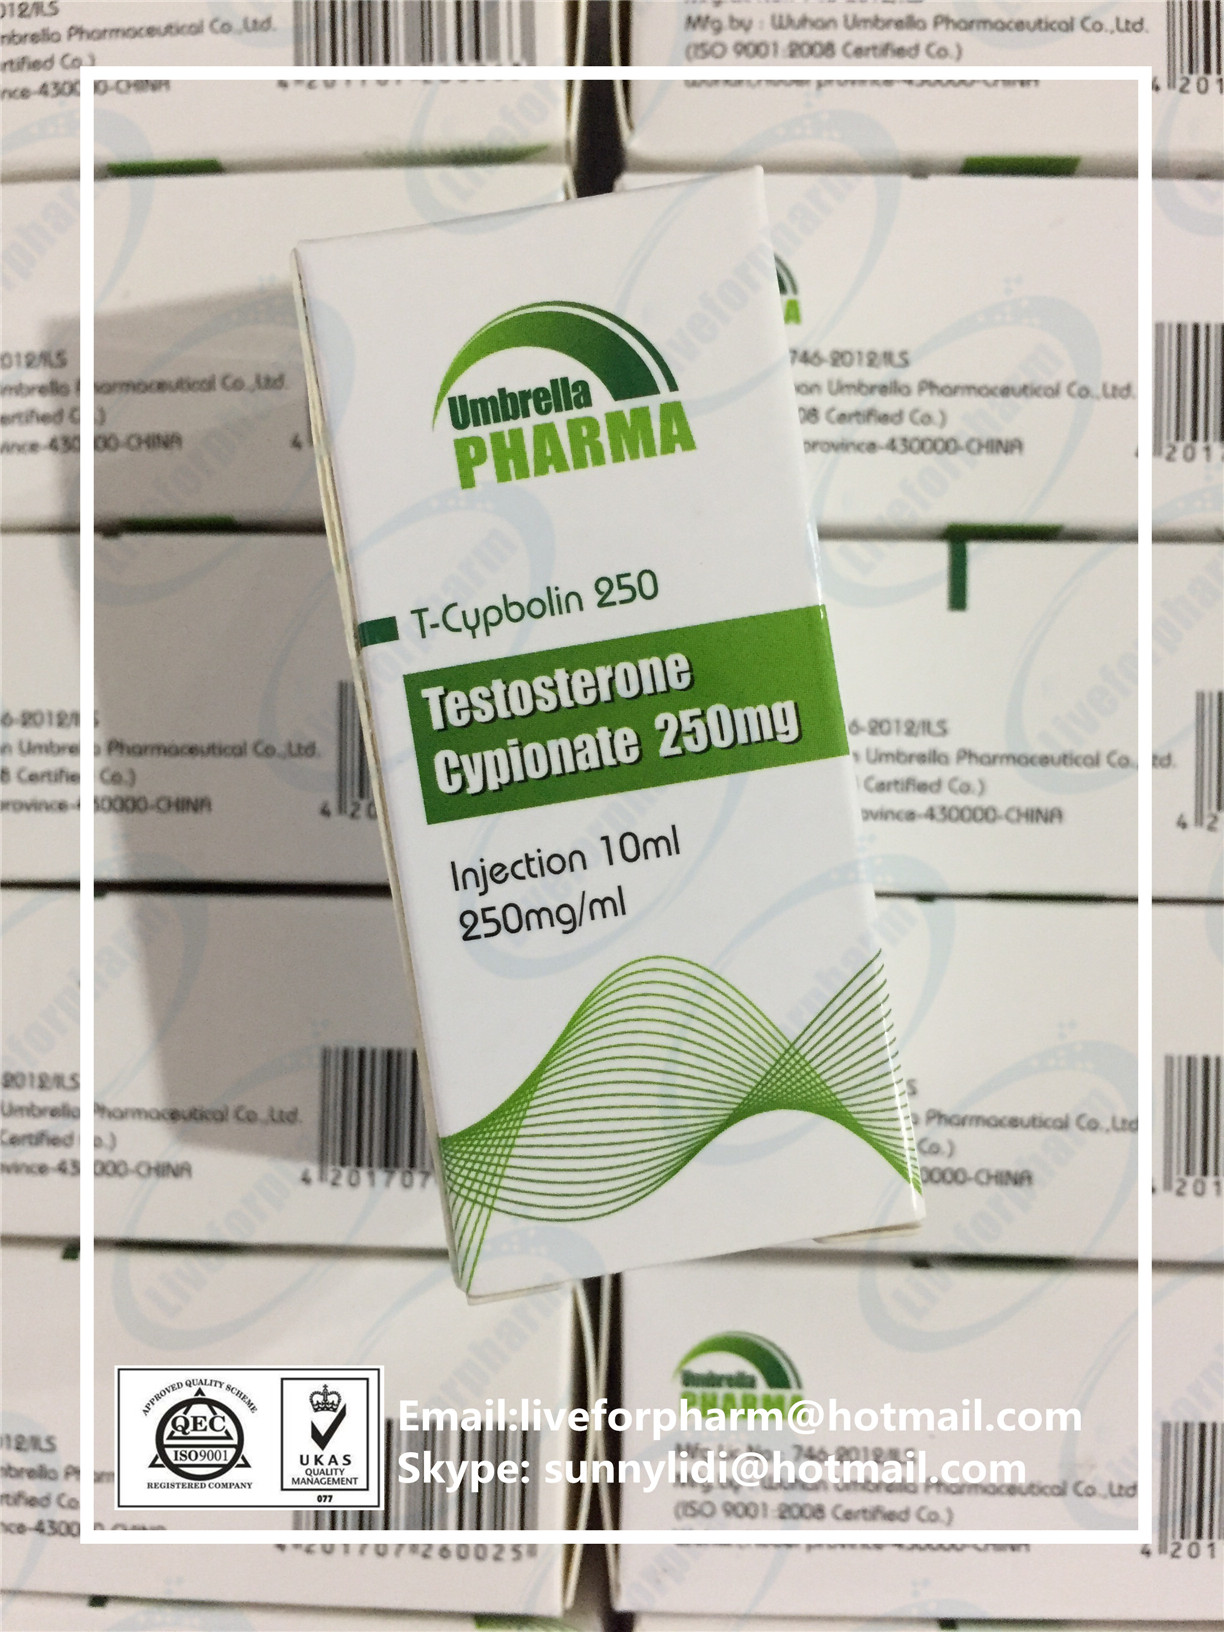 Steroid OIL Injection liquid Testo Cypionate 250mg/ml TC250 T-Cypbolin 250 98.8% above